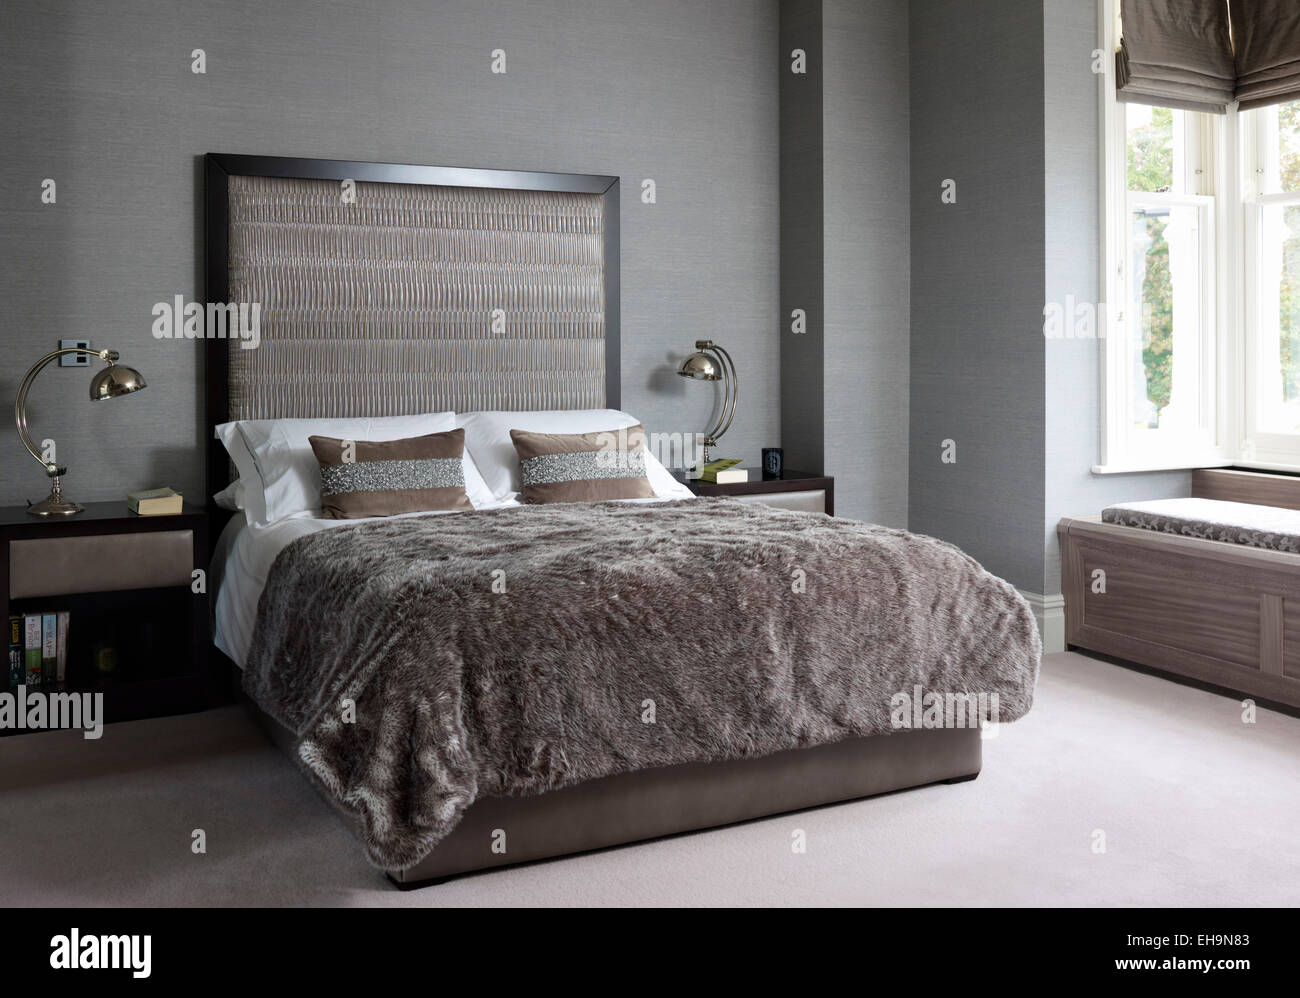 Double Bed With Matching Side Tables And Lamps With Oversized Stock Photo Royalty Free Image